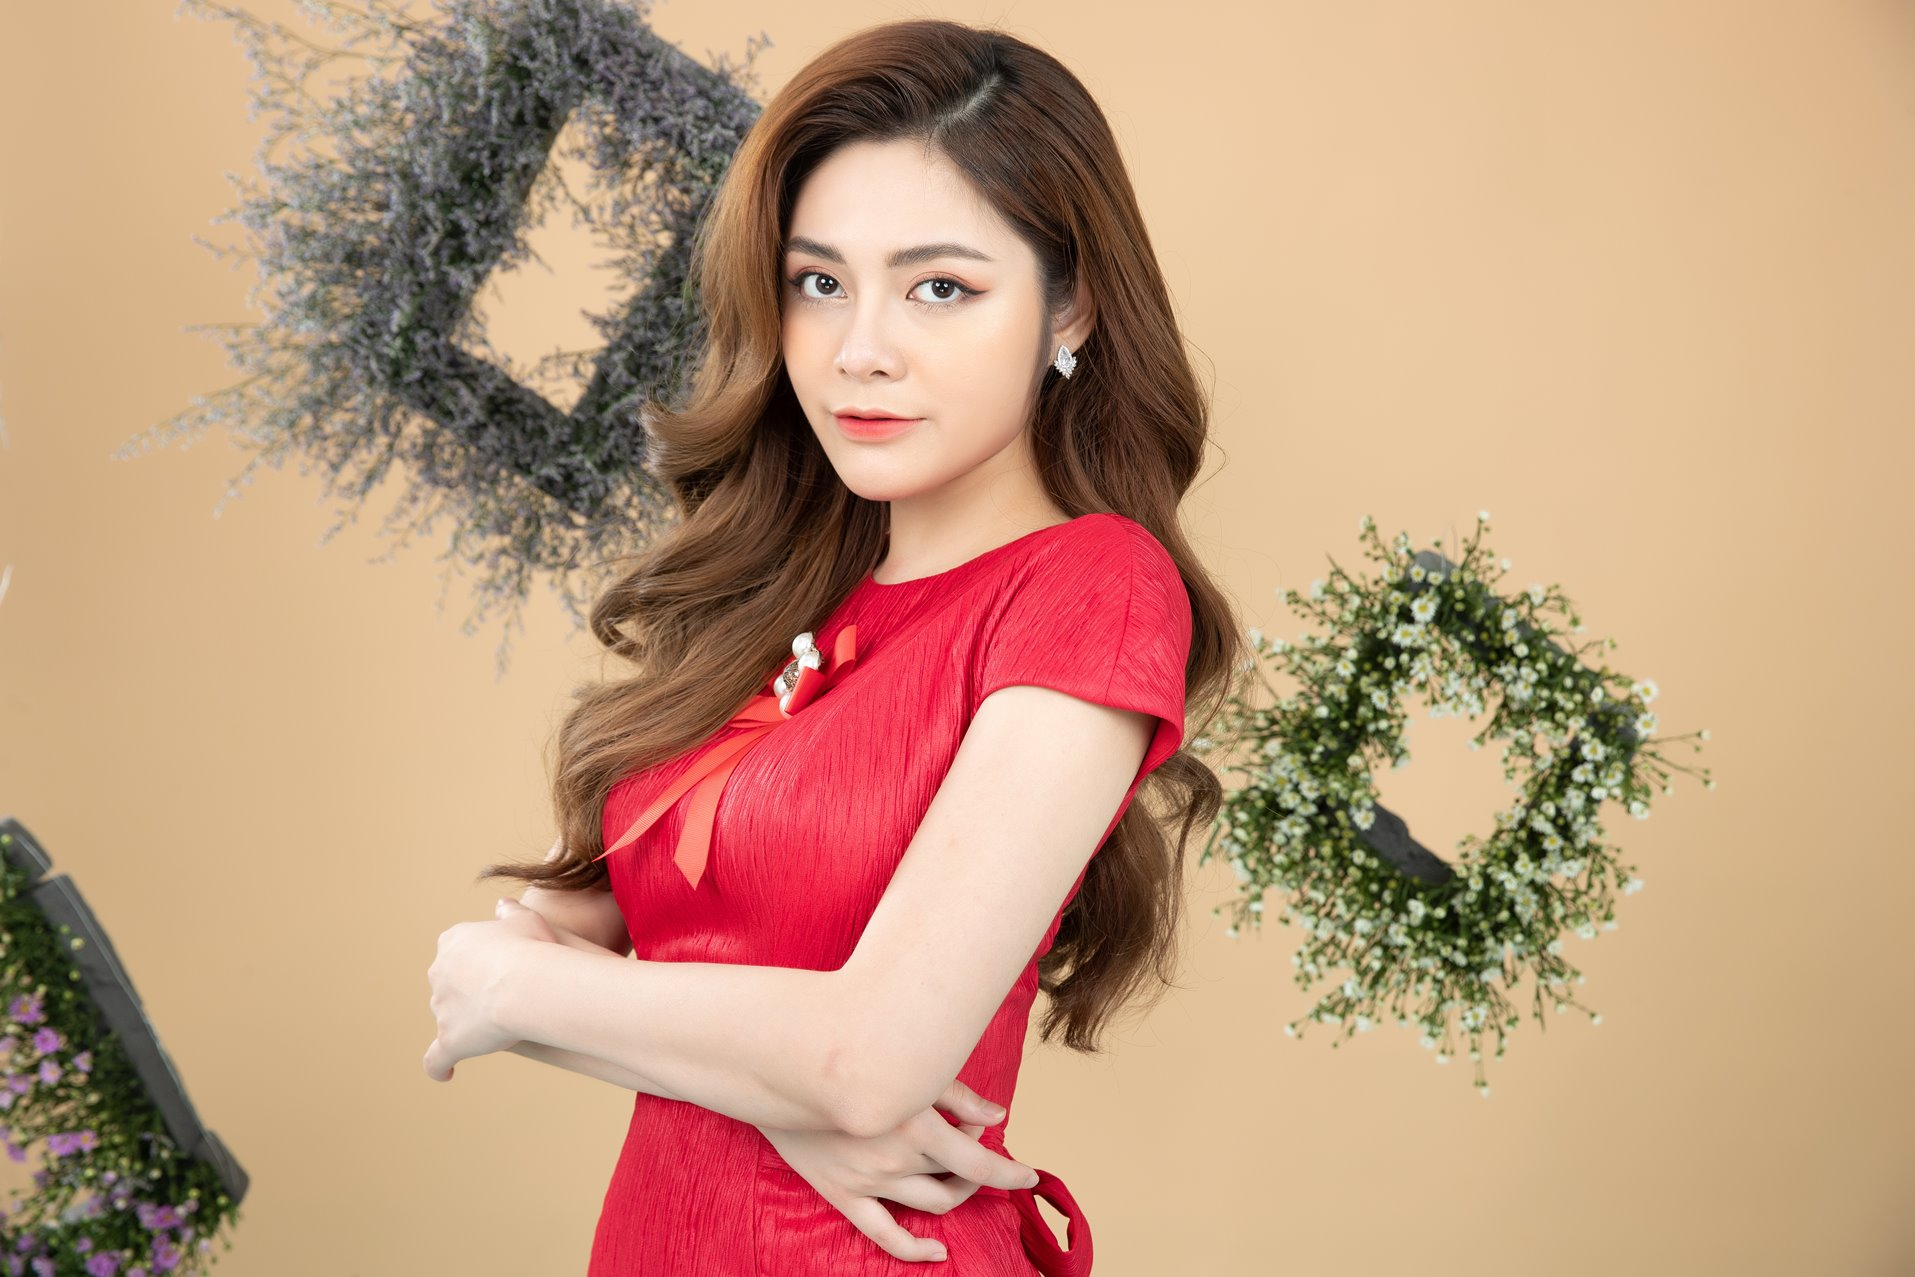 """hot girl nong cung world cup co canh hon gay """"nghen song"""" vtv khoe vong eo 53cm hinh anh 5"""